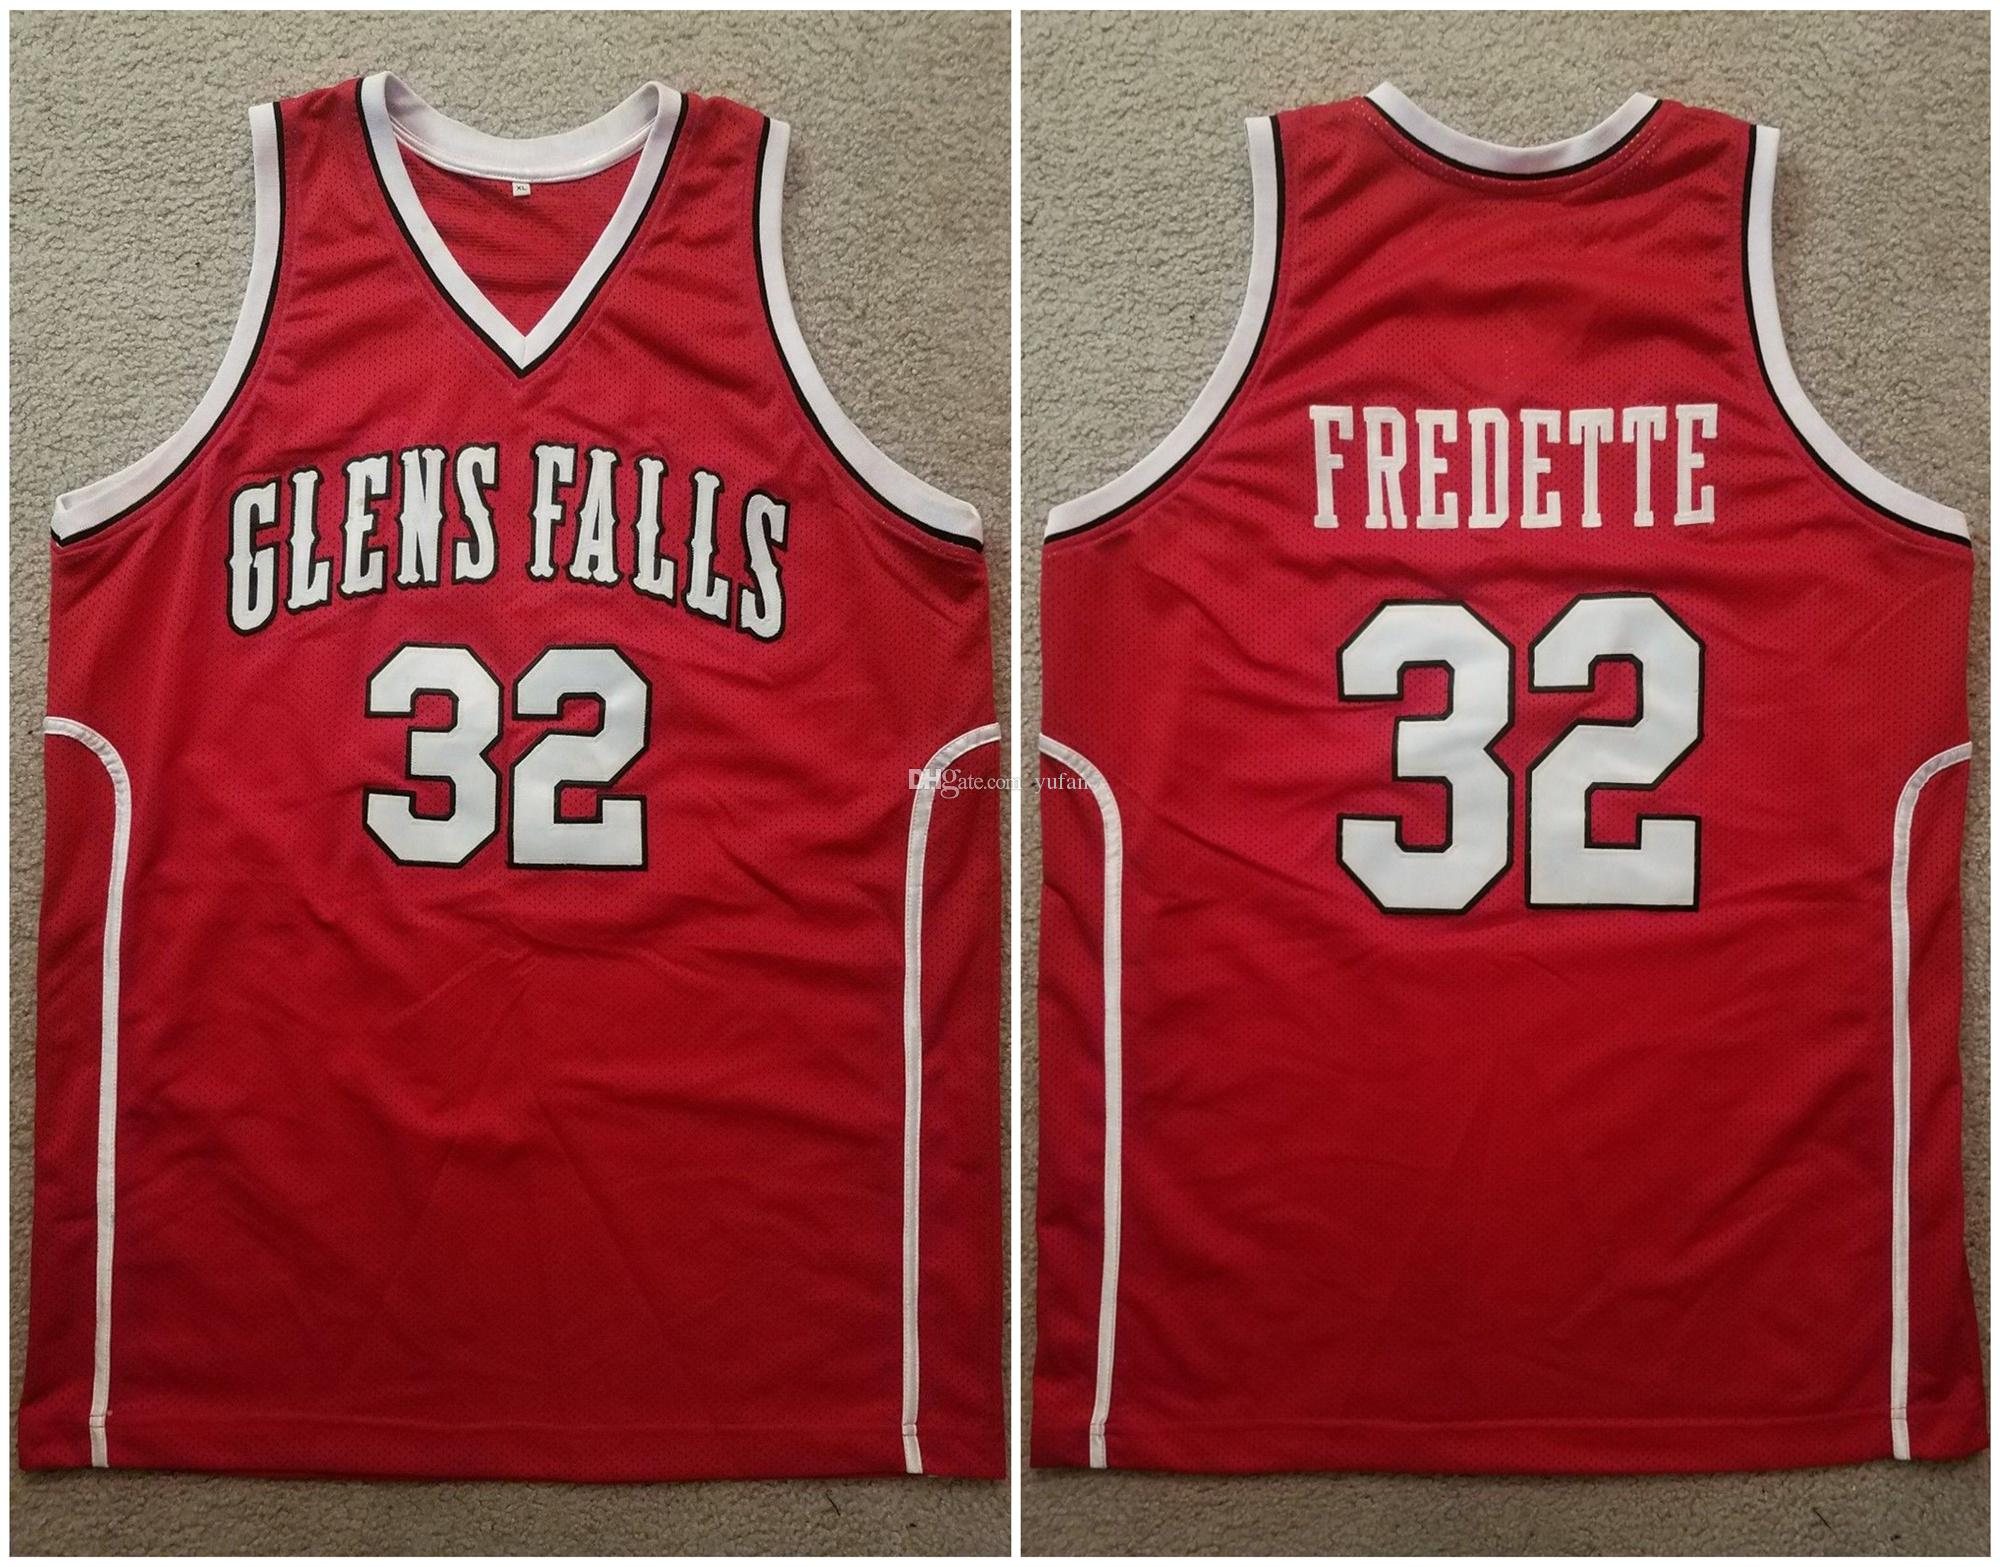 9fab1e8d1e65 Jimmer Fredette  32 Glens Falls Indians High School Retro Basketball Jersey  Mens Stitched Custom Any Number Name Jimmer Fredette Basketball Jersey  Online ...